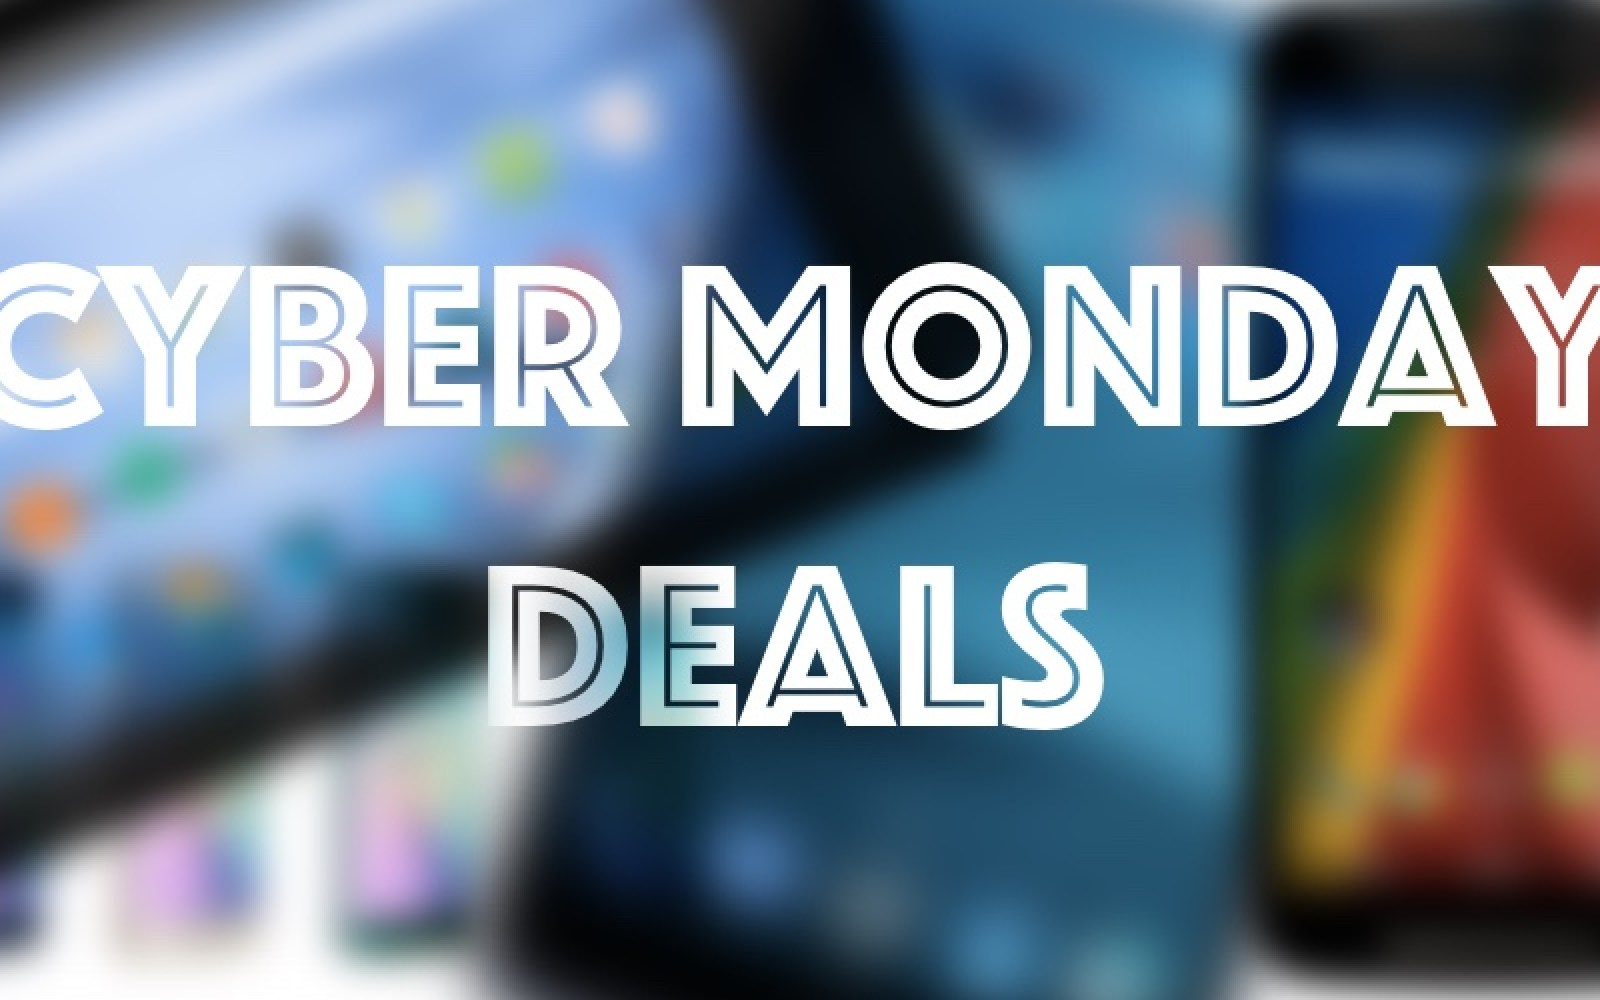 Cyber Monday Android deals: $60 off Kindle Fire HD 10, Moto G 2 for $99, prepaid LG for $15, more